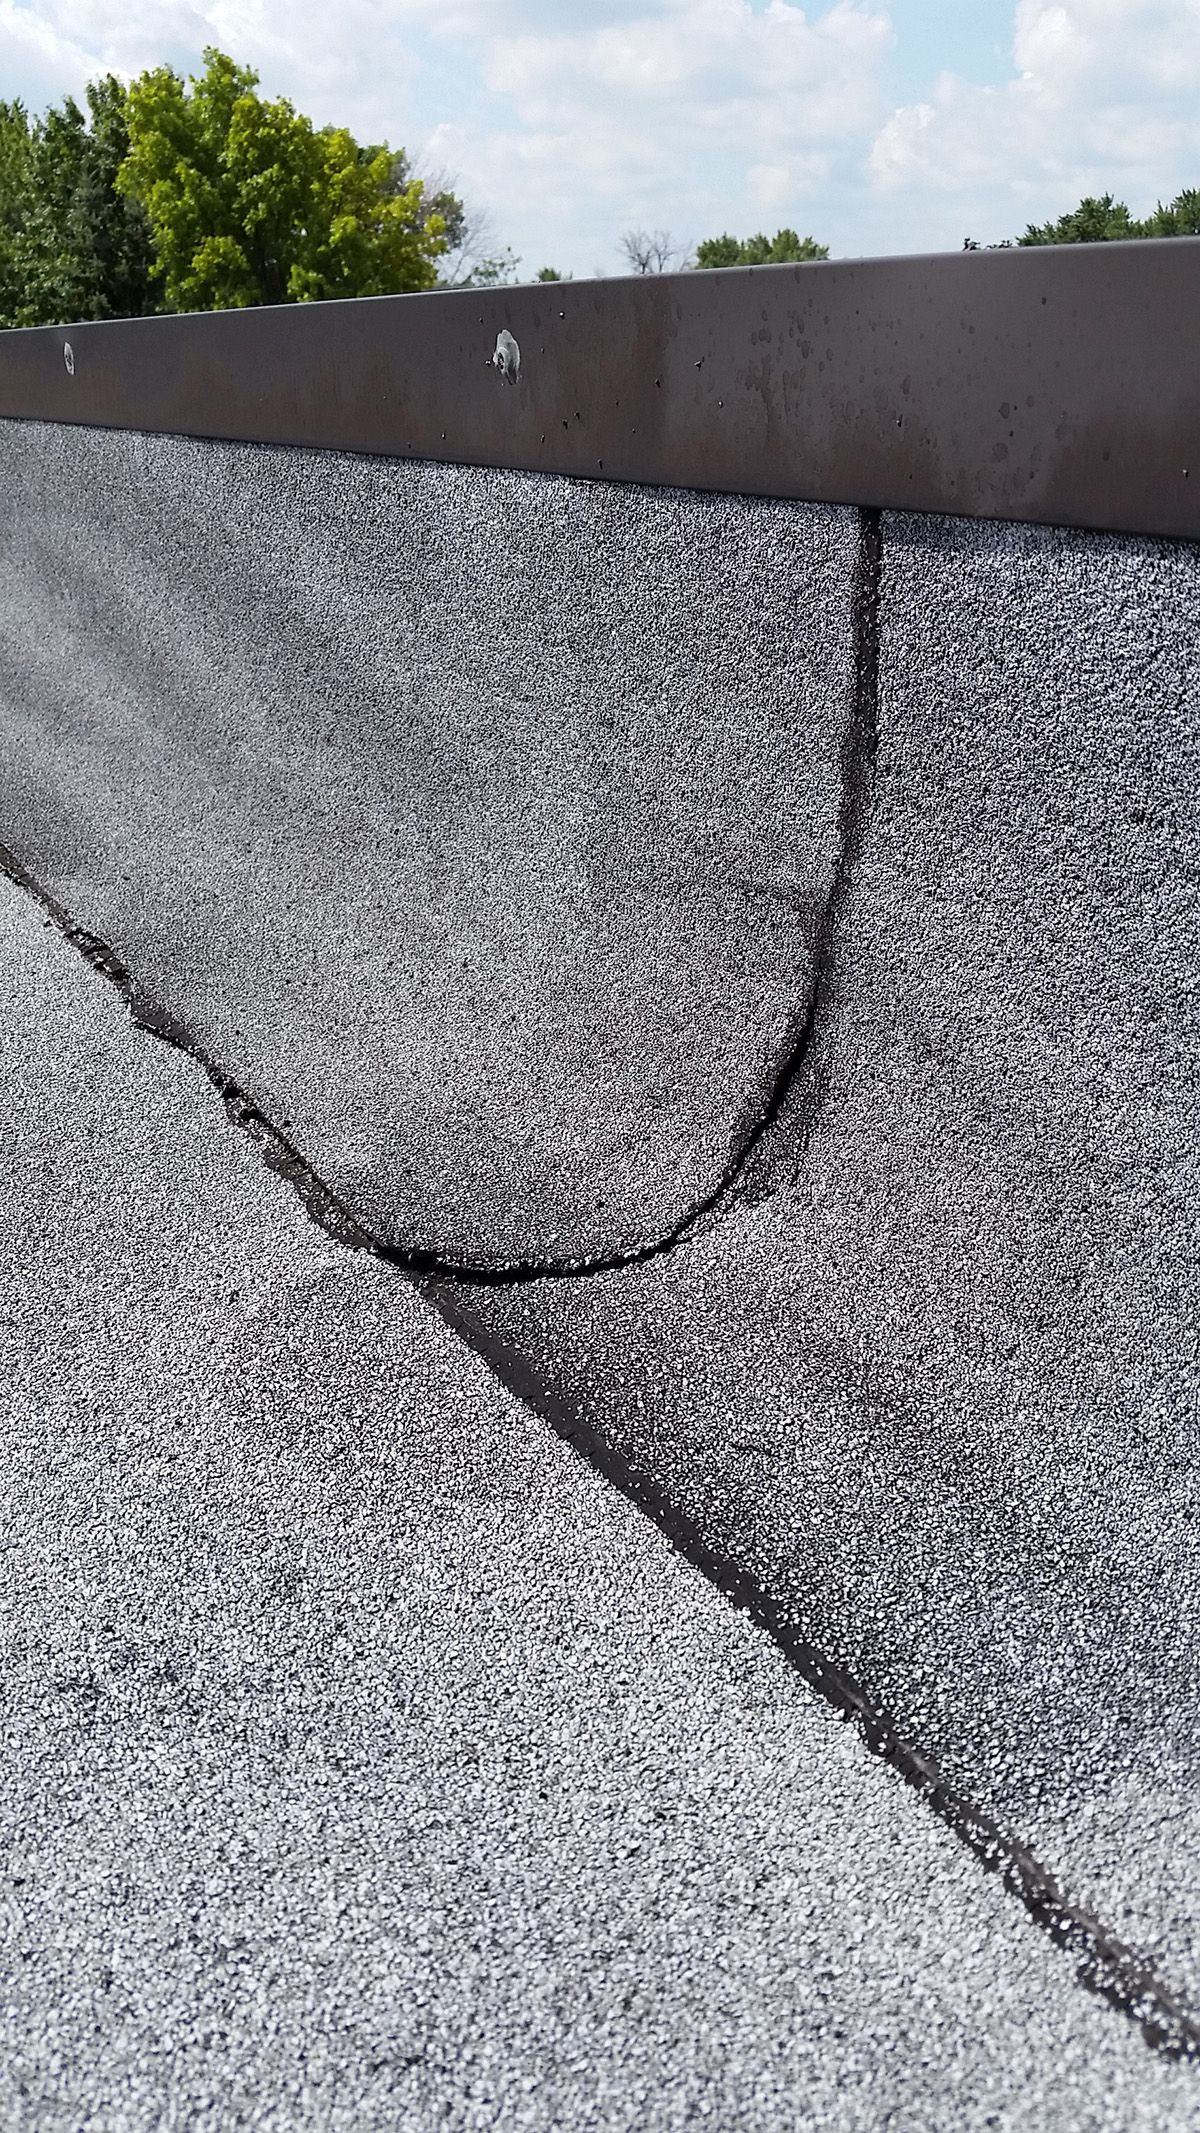 Roof Restoration And Repair We Specialize In Flat Roof Systems Relevant Roofing Are Roofing Specialists In Flat Roof Systems And Our Service Flat Roof Repair Roof Replacement Cost Roof Restoration